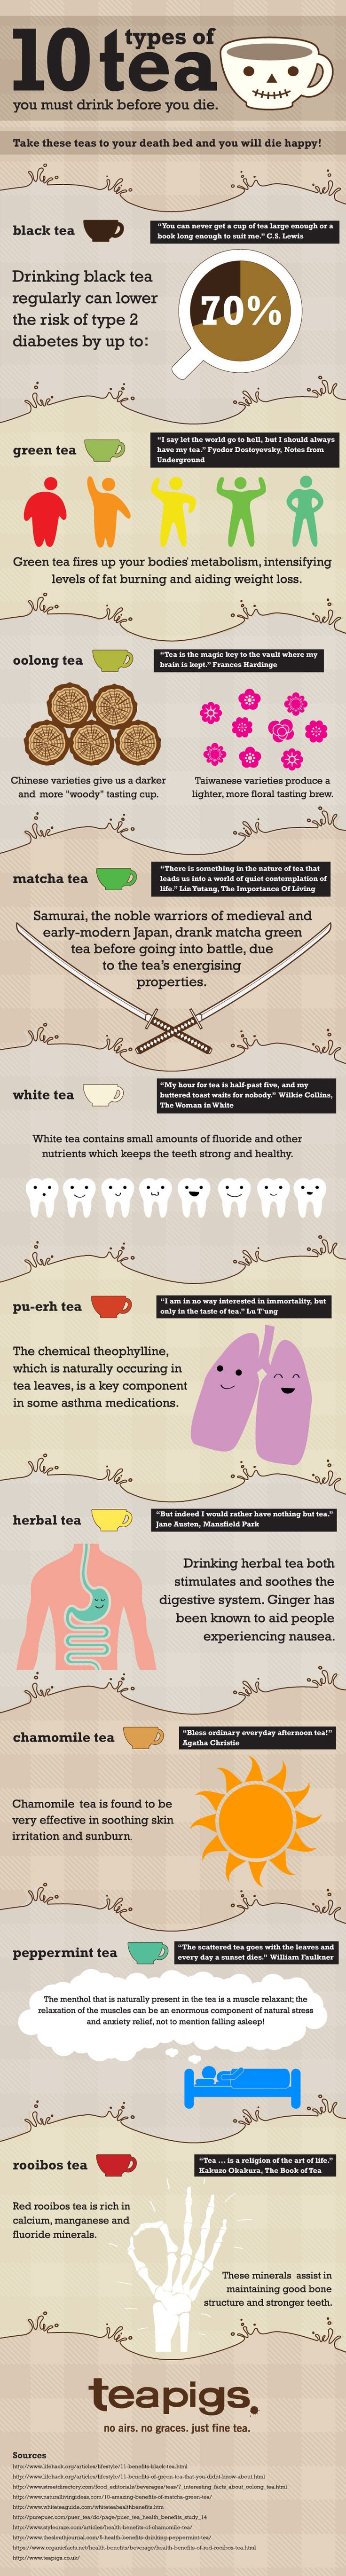 10 Types of Tea You Should Try {Infographic}